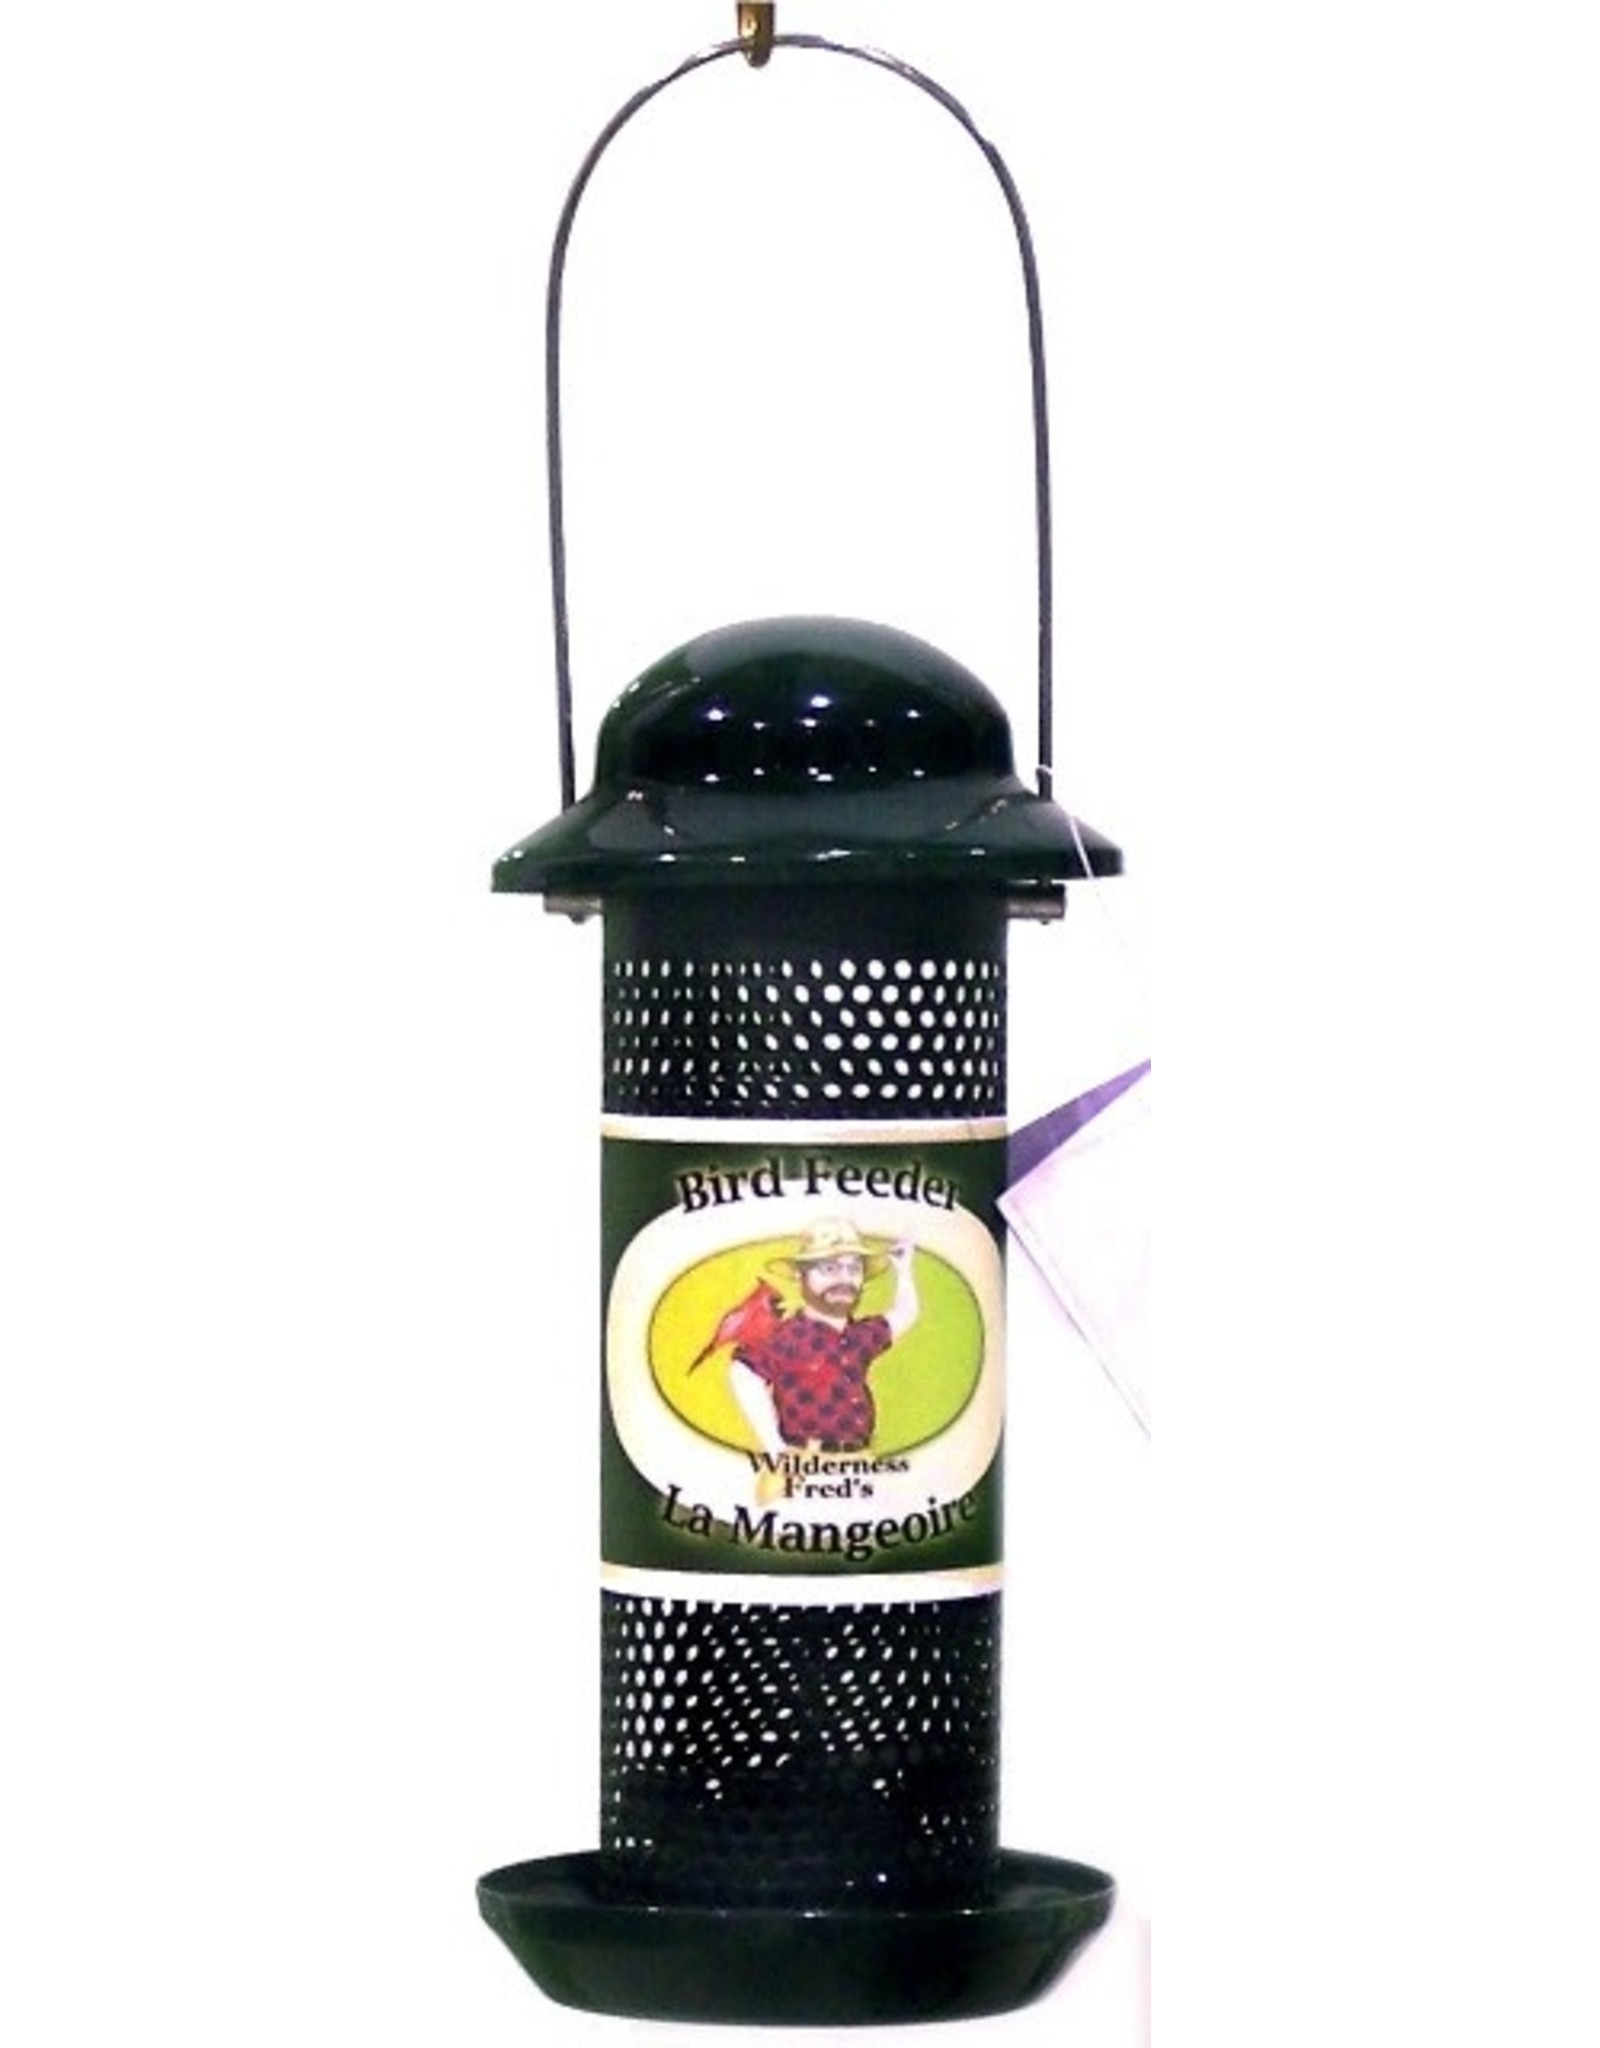 Wilderness Fred's WBBSF10 Mesh Nyjer feeder with tray